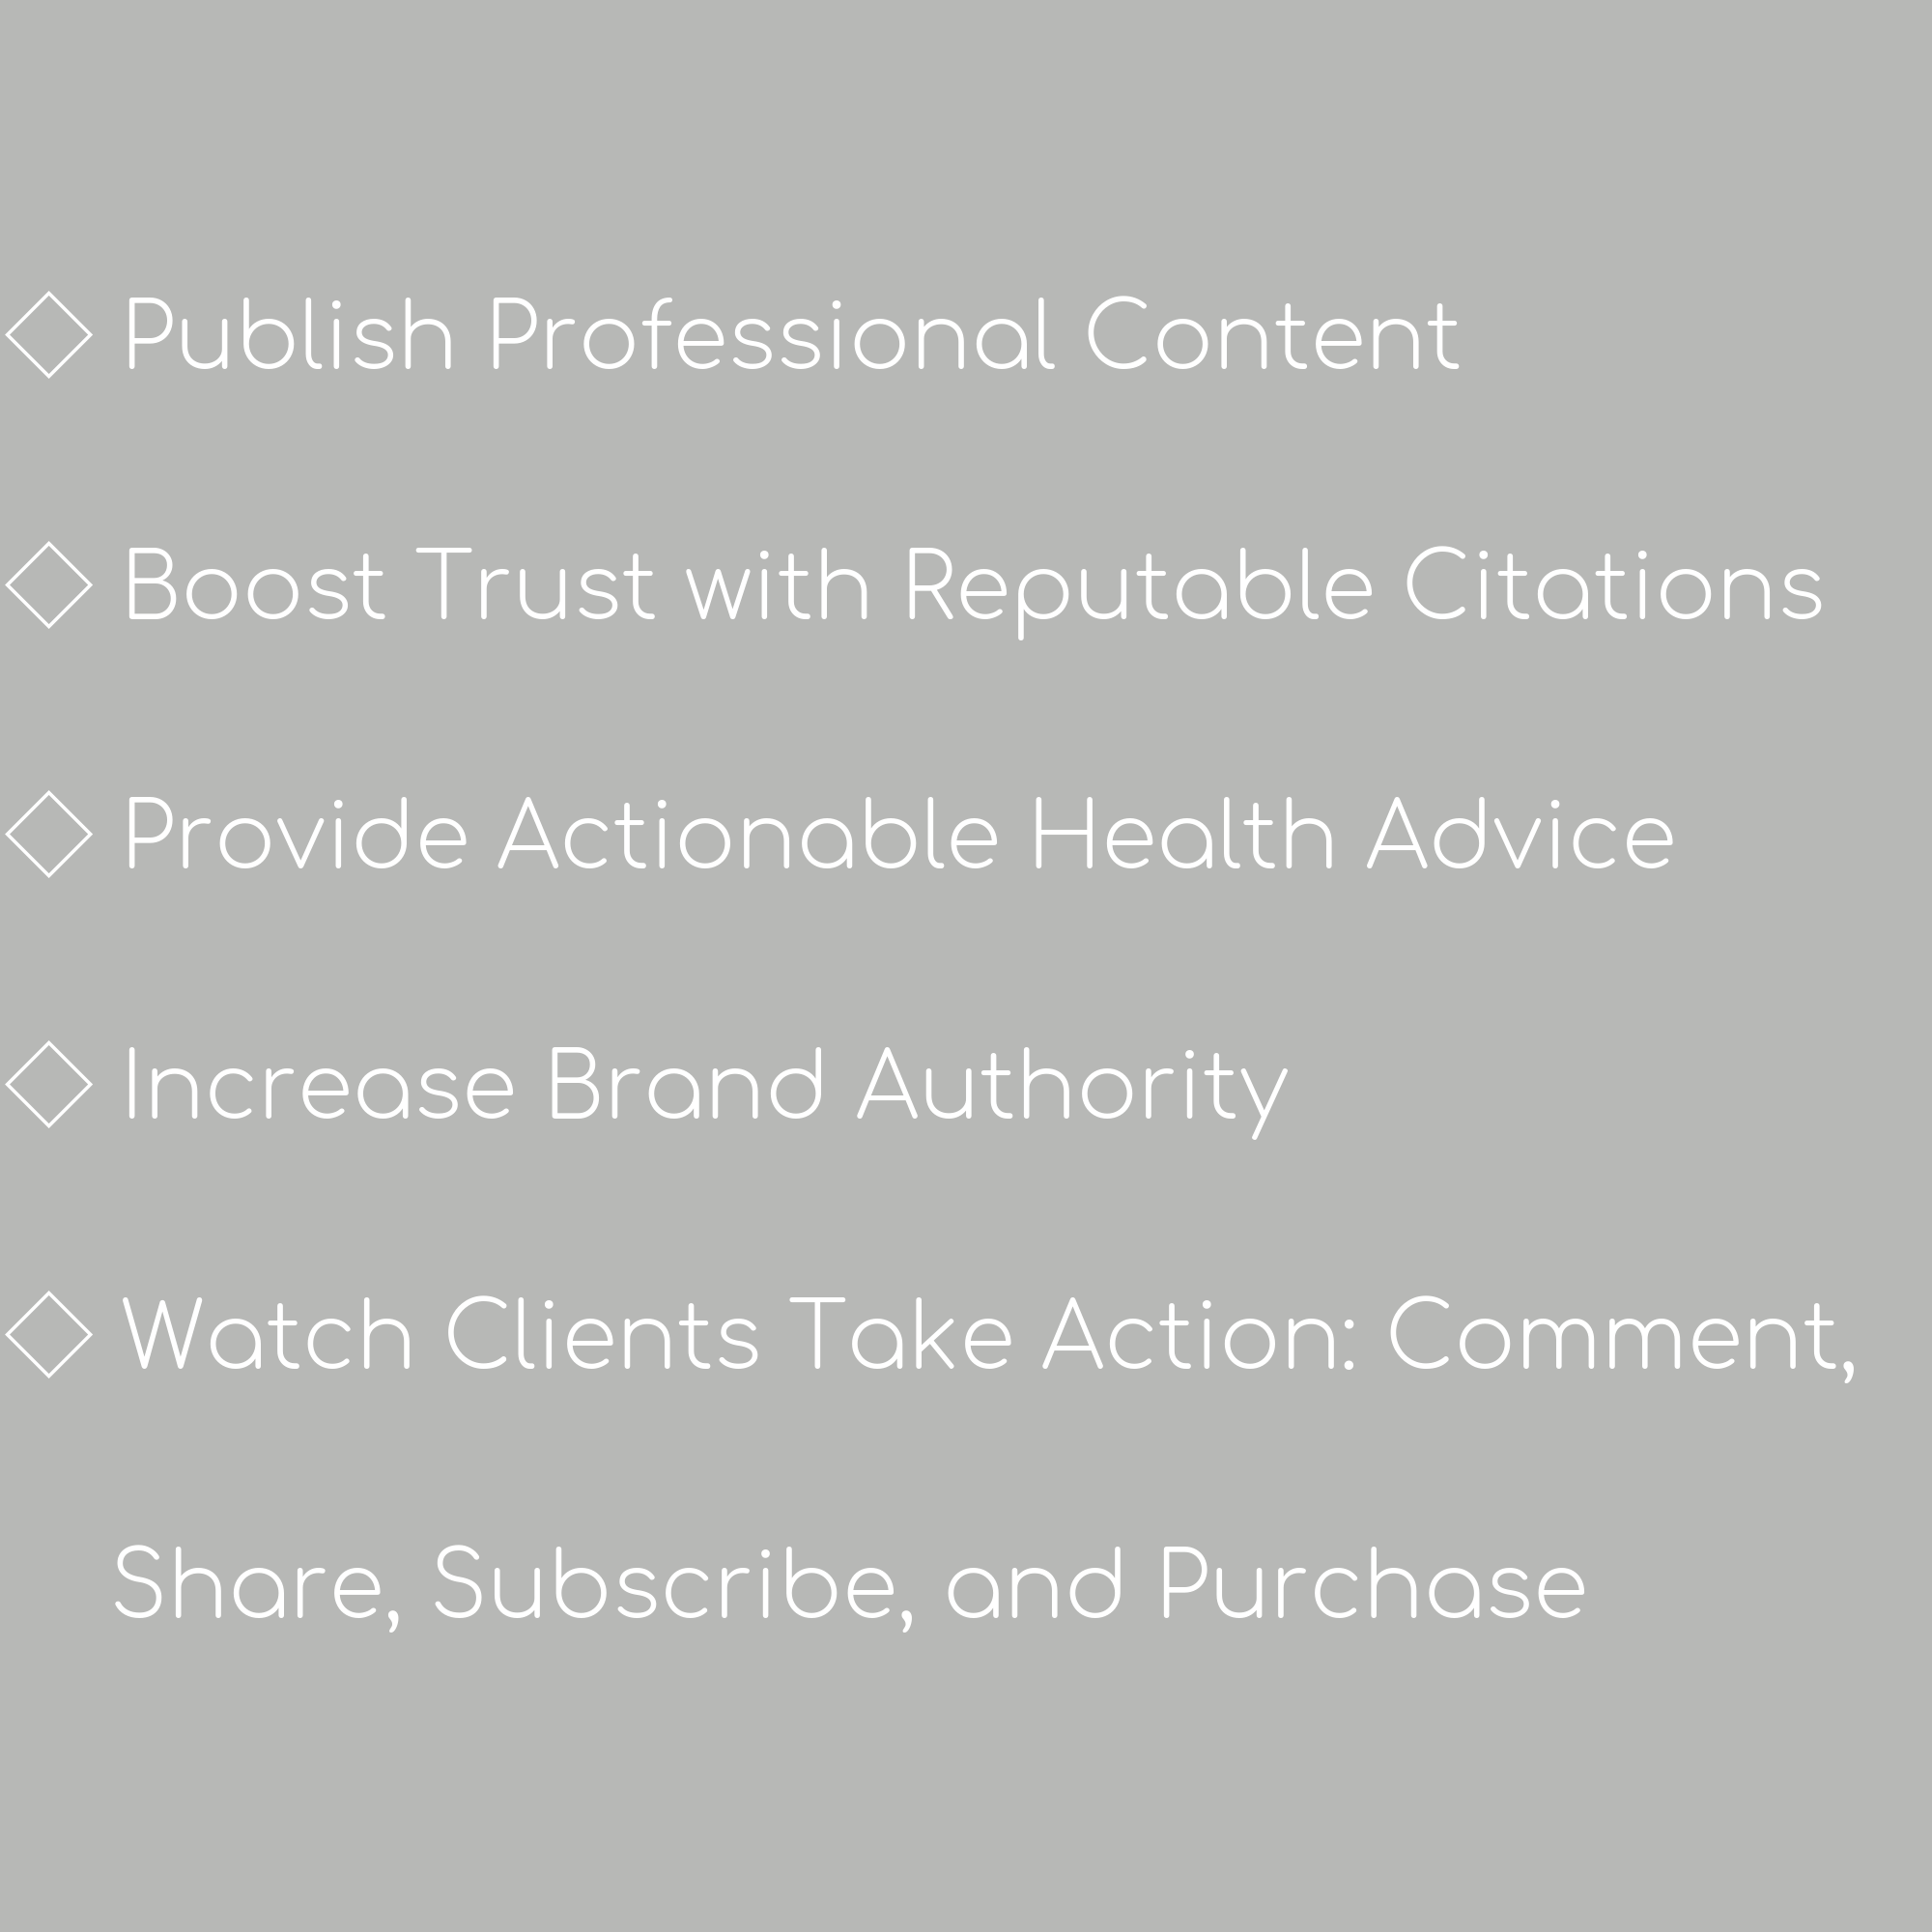 Copy of ✔ Publish Professional Content ✔ Boost Trust with Reputable Citations ✔ Provide Actionable Health Advice ✔ Increase Brand Authority ✔ Watch Clients Take Action_ Comment, Share, Subscribe, and Purchase-3.png